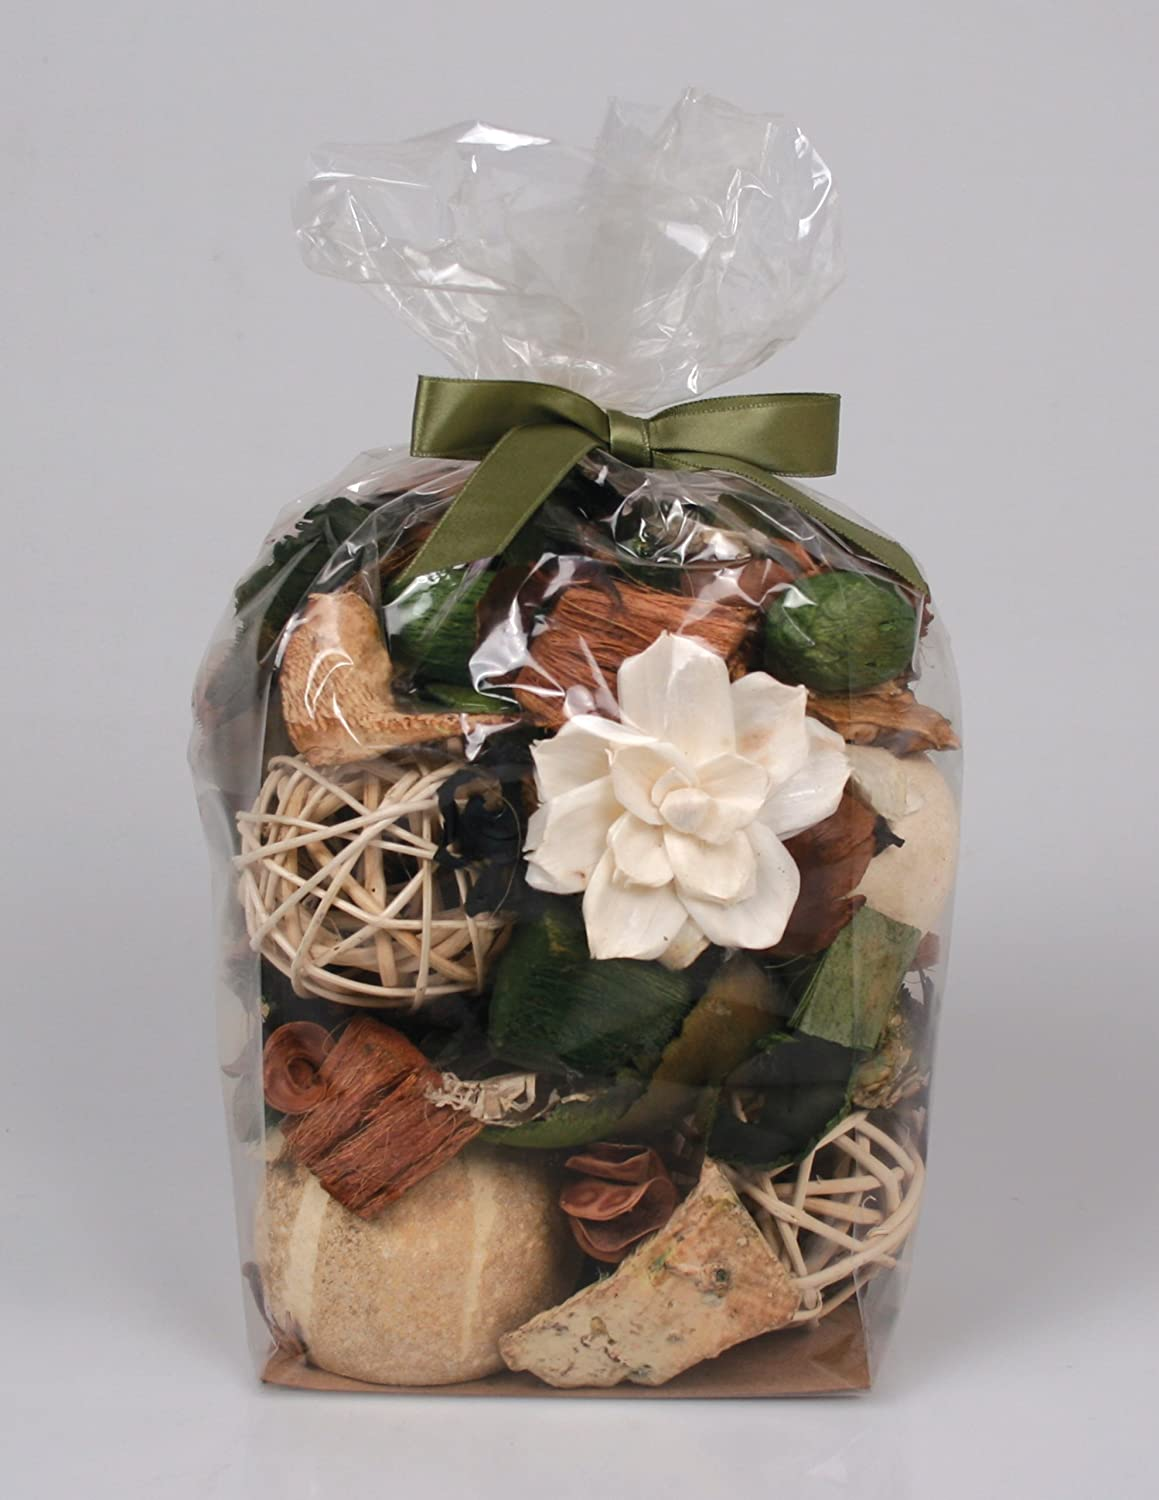 Potpourri - Medium Bag (12 oz) (Gardenia)